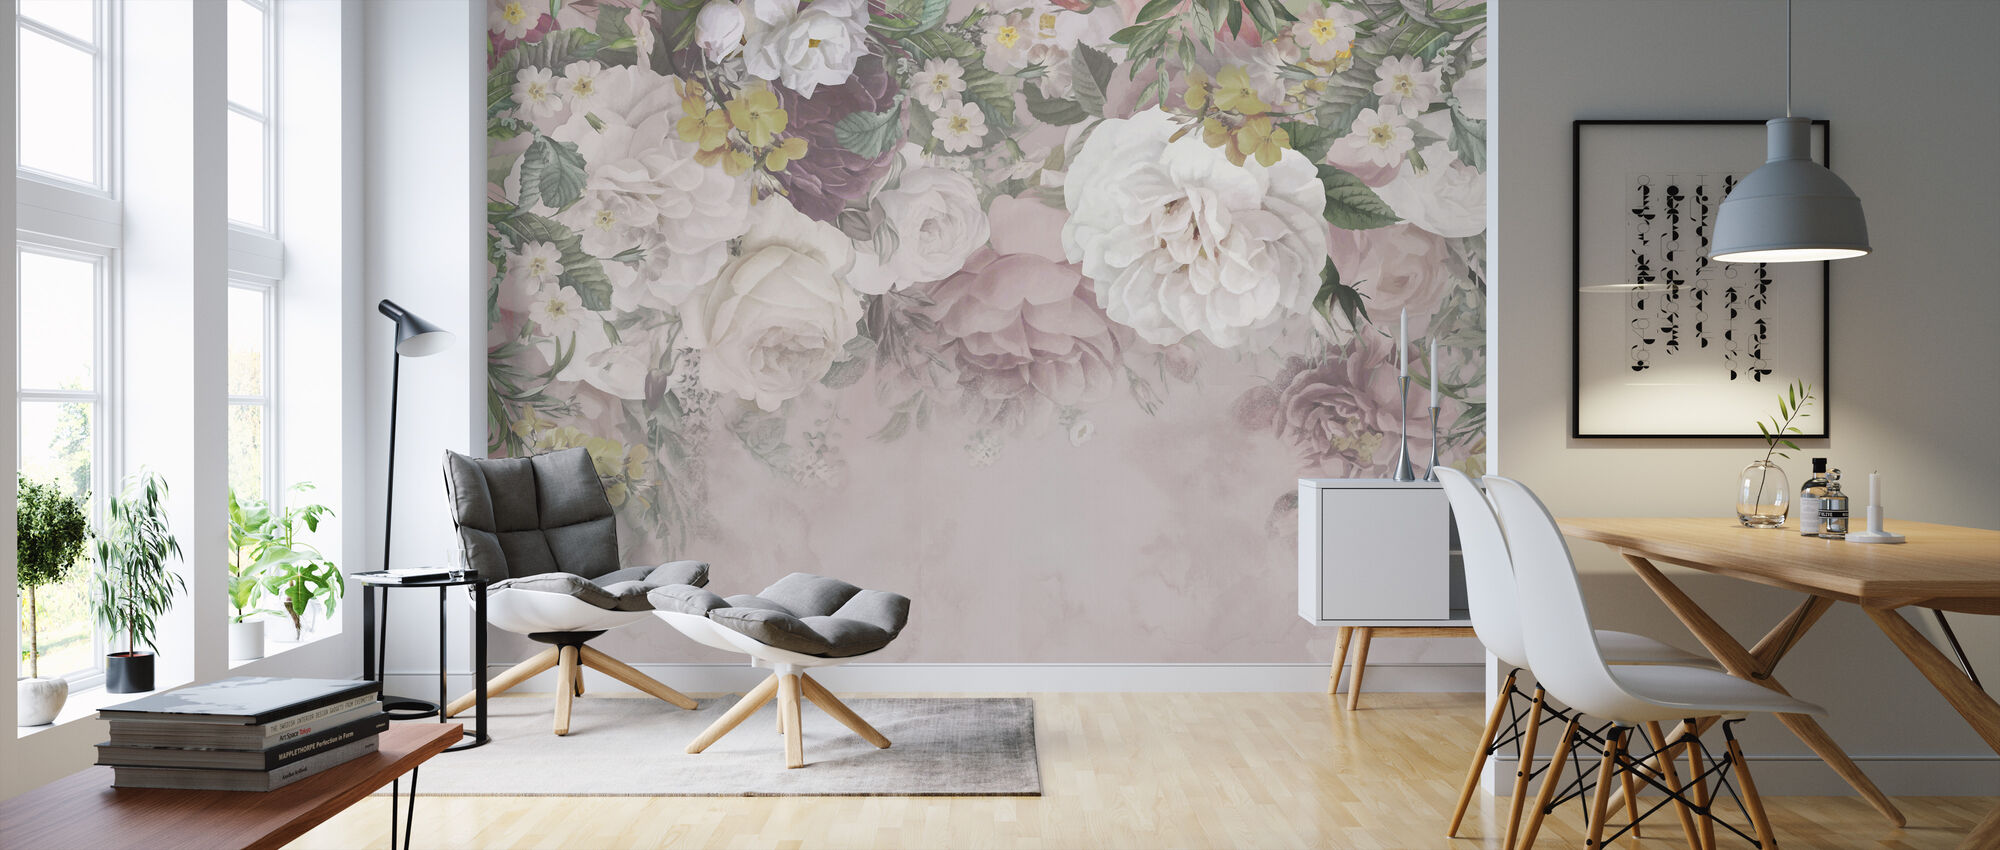 Gentle Flowers - Wallpaper - Living Room